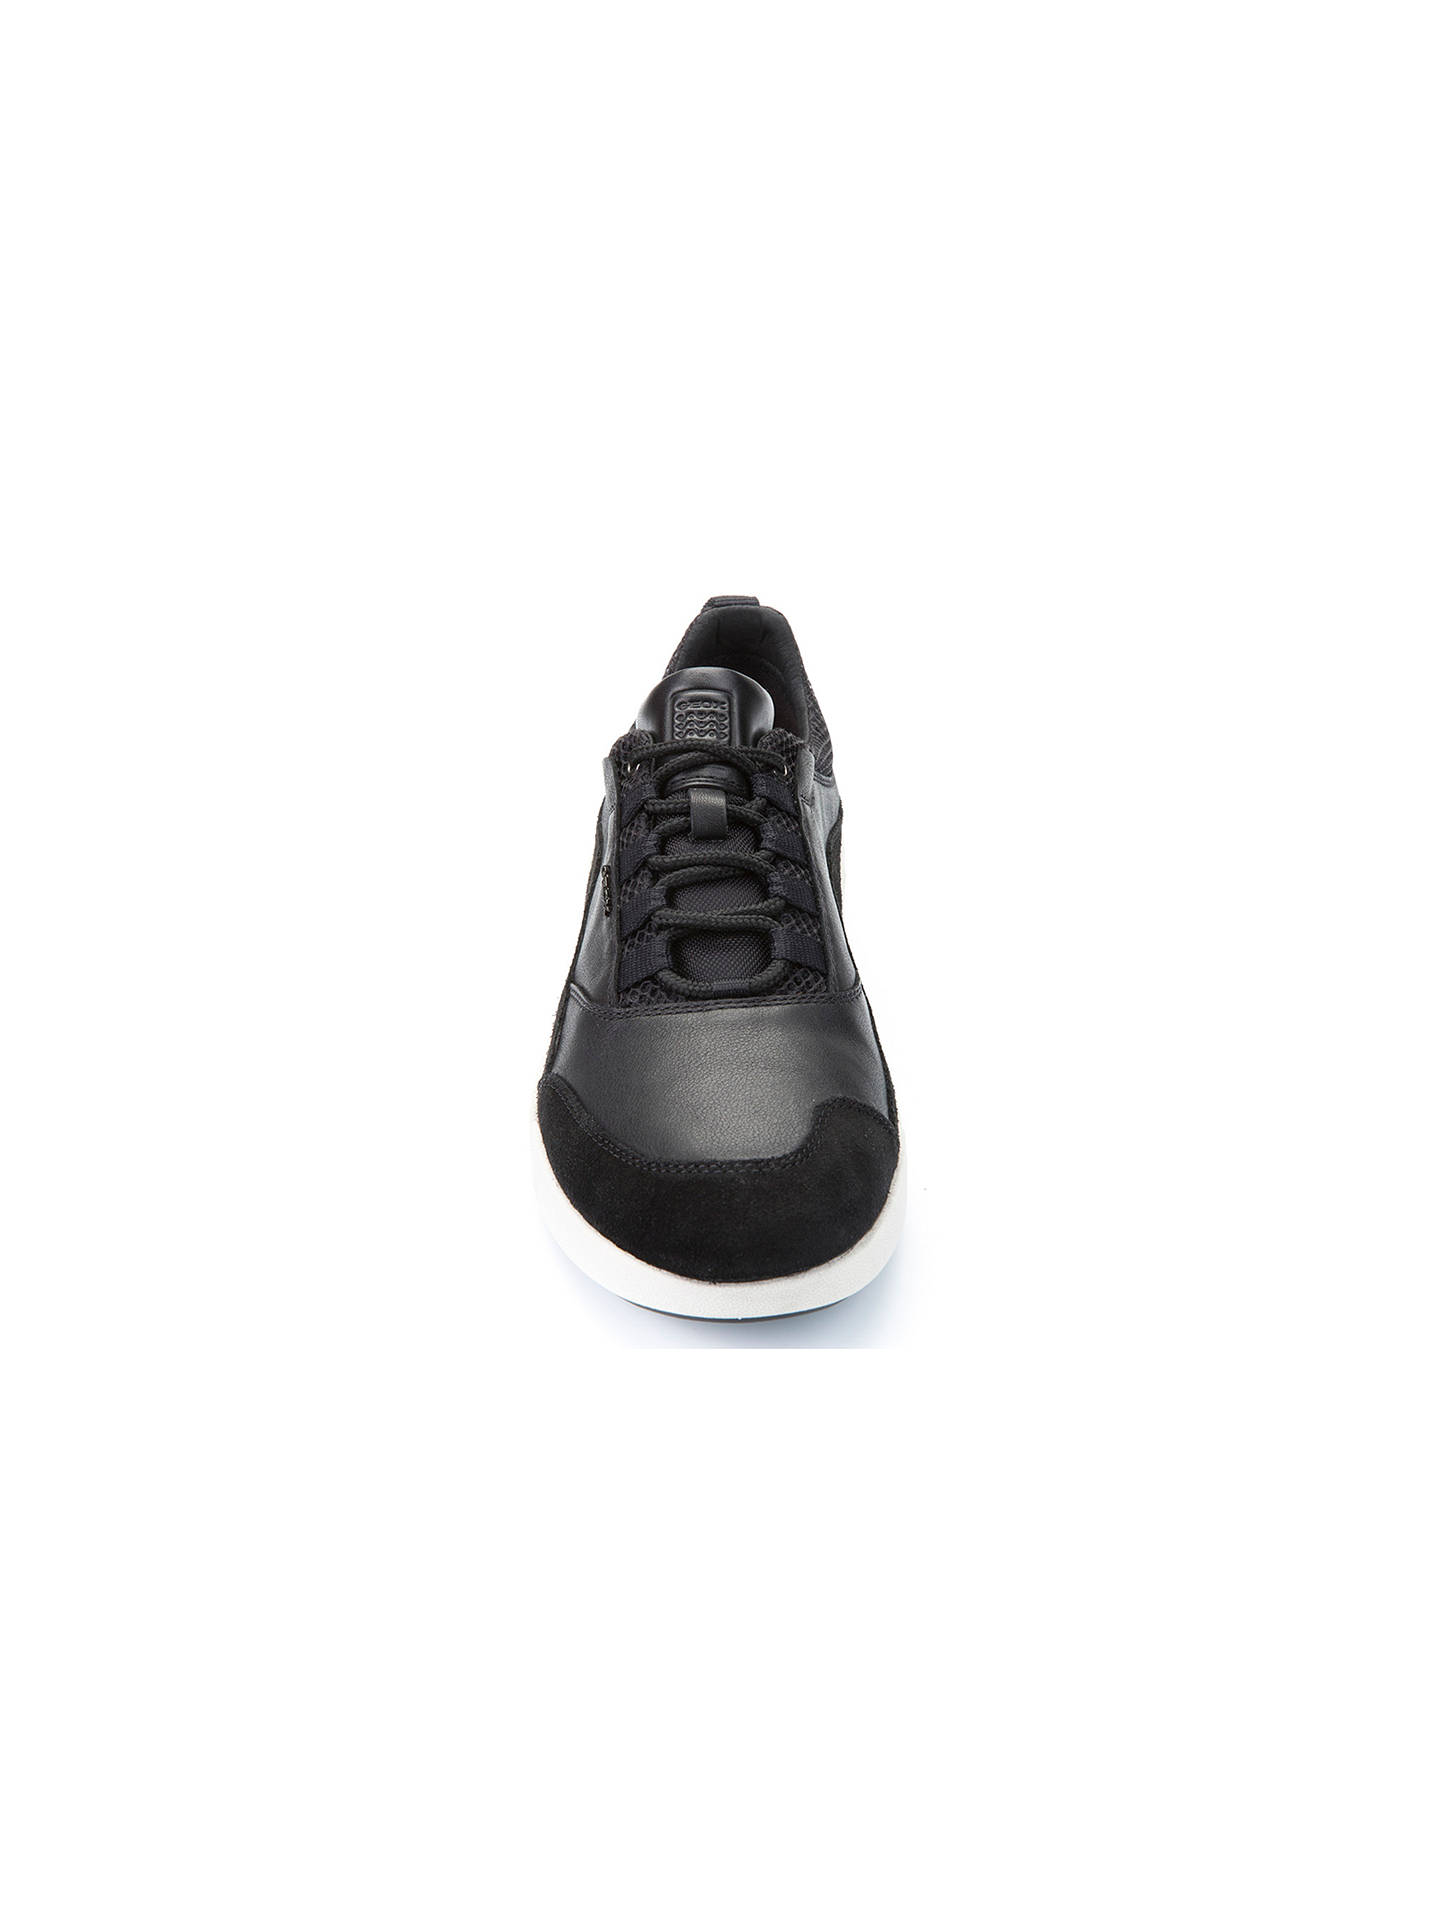 Geox Ailand Trainers | Black at John Lewis & Partners